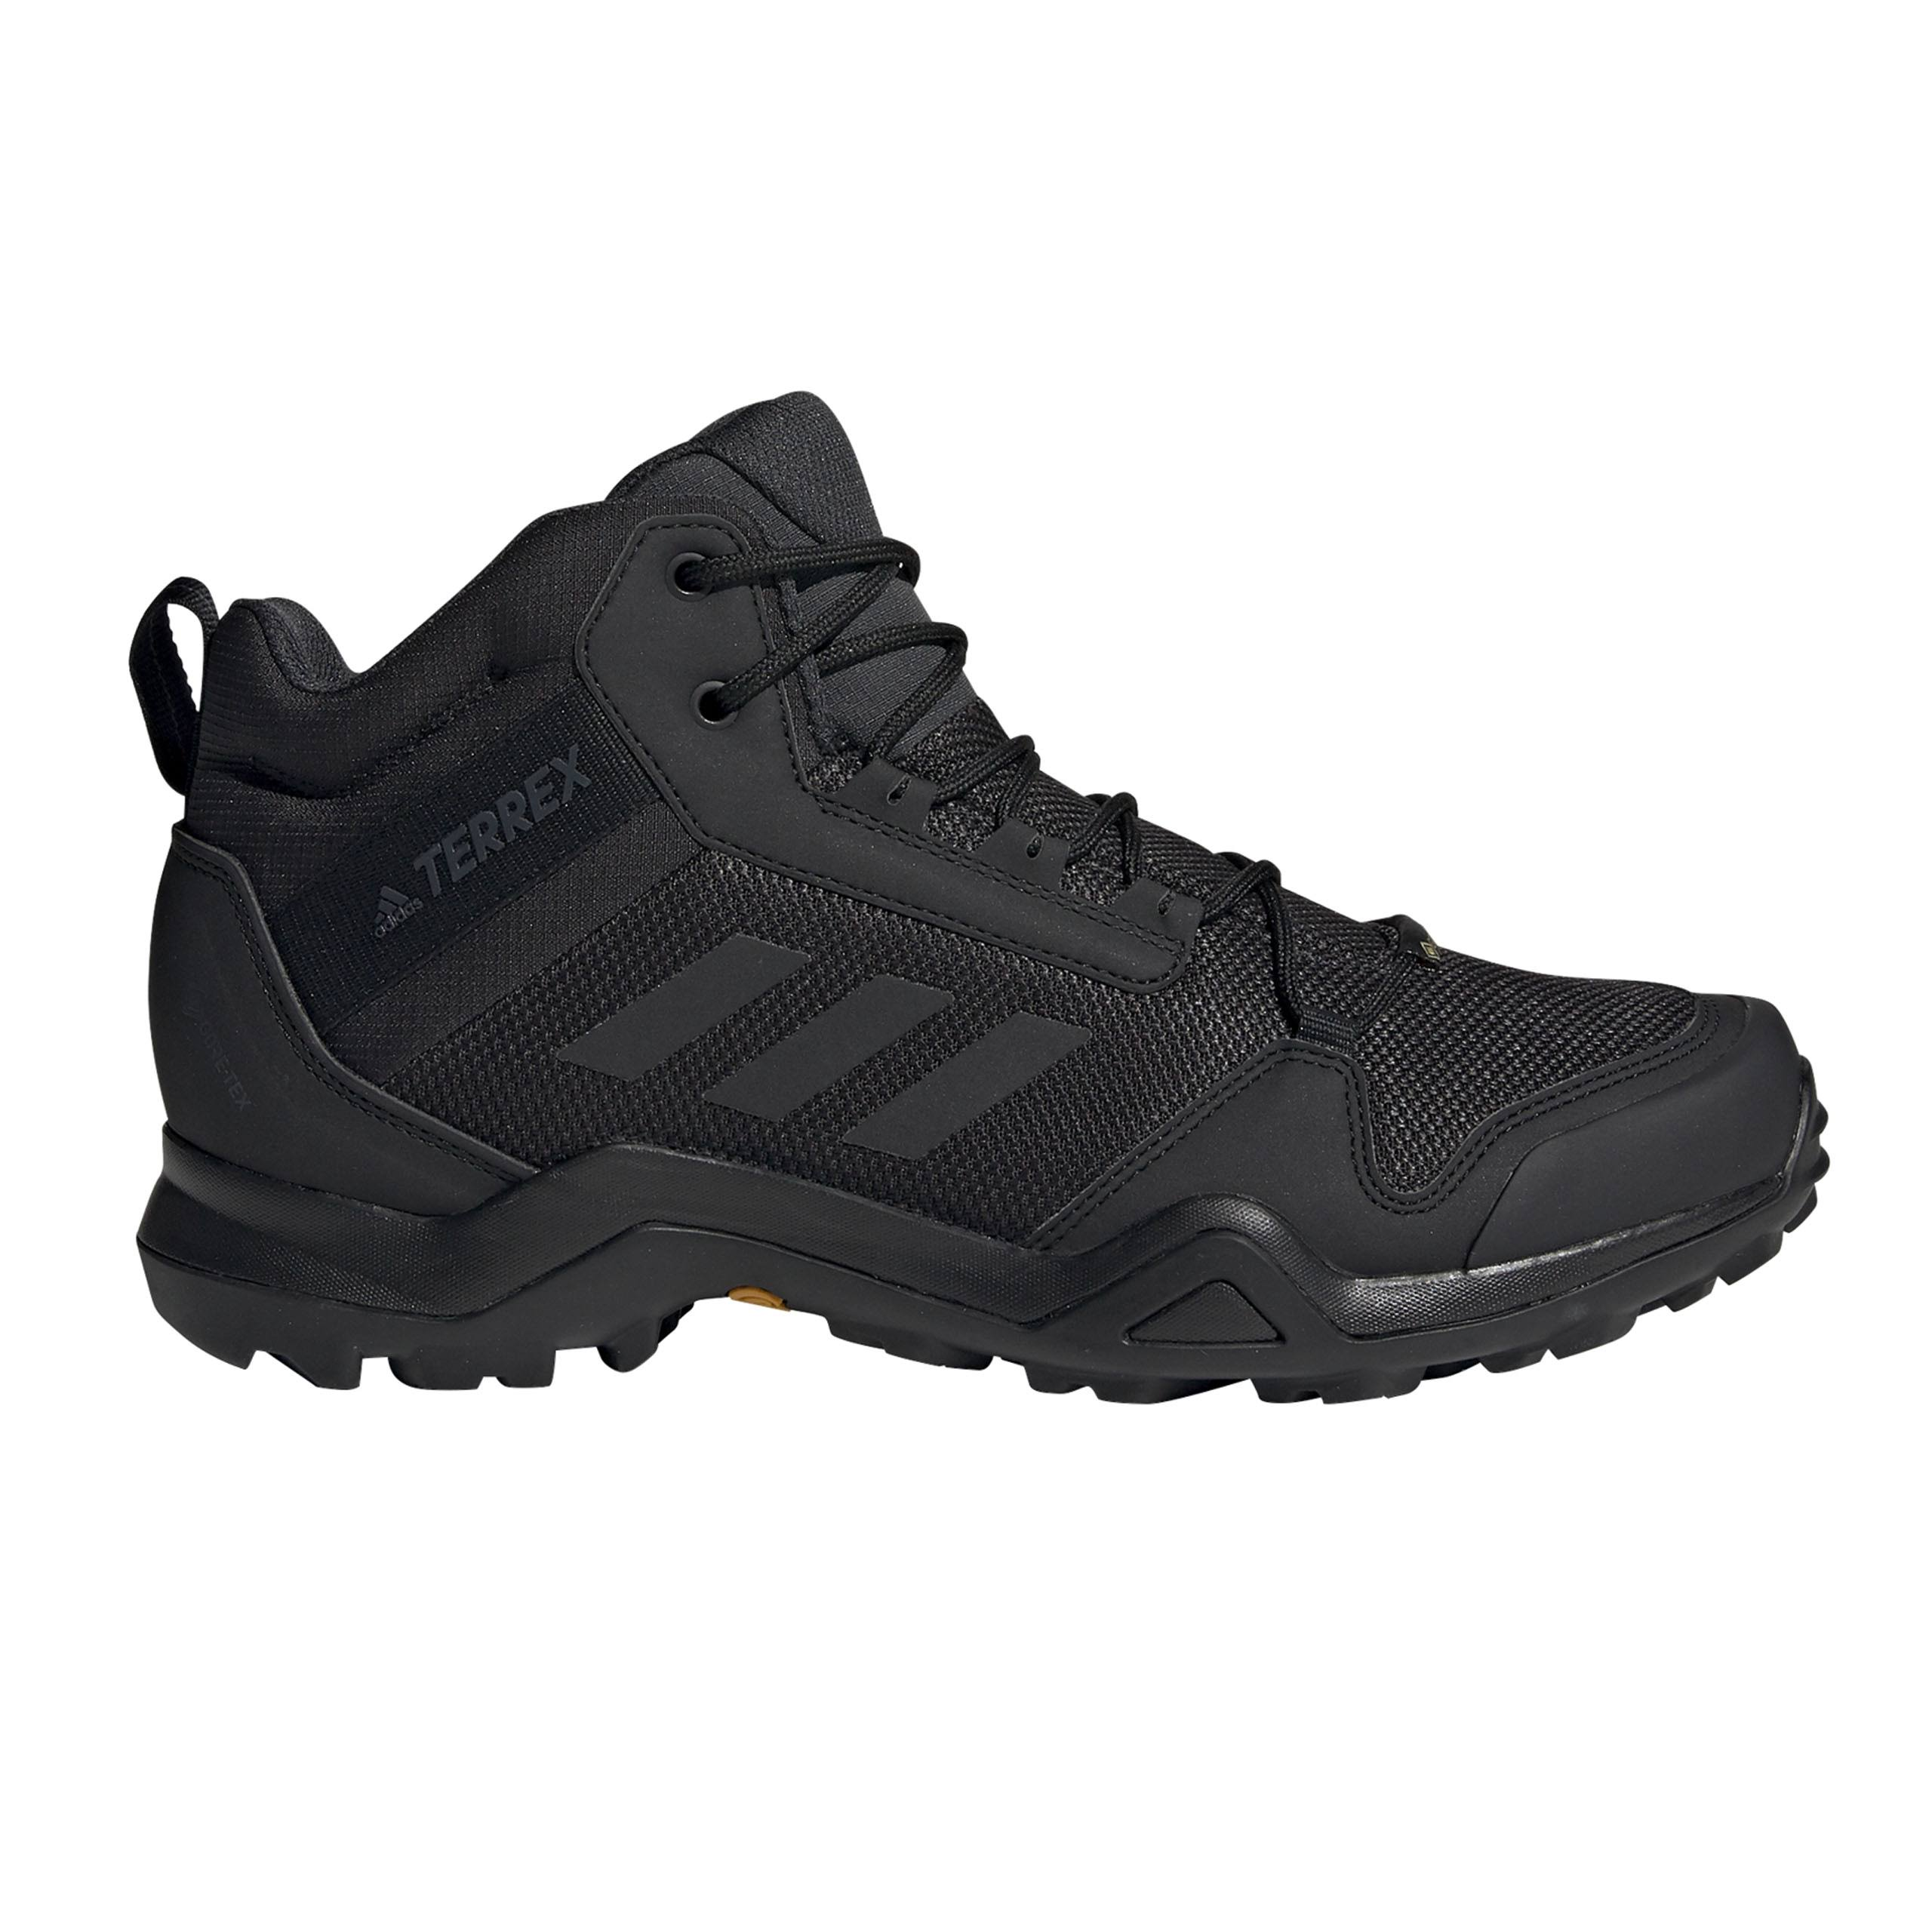 Adidas Men's Terrex AX3 Mid Gore-Tex Shoes - Black